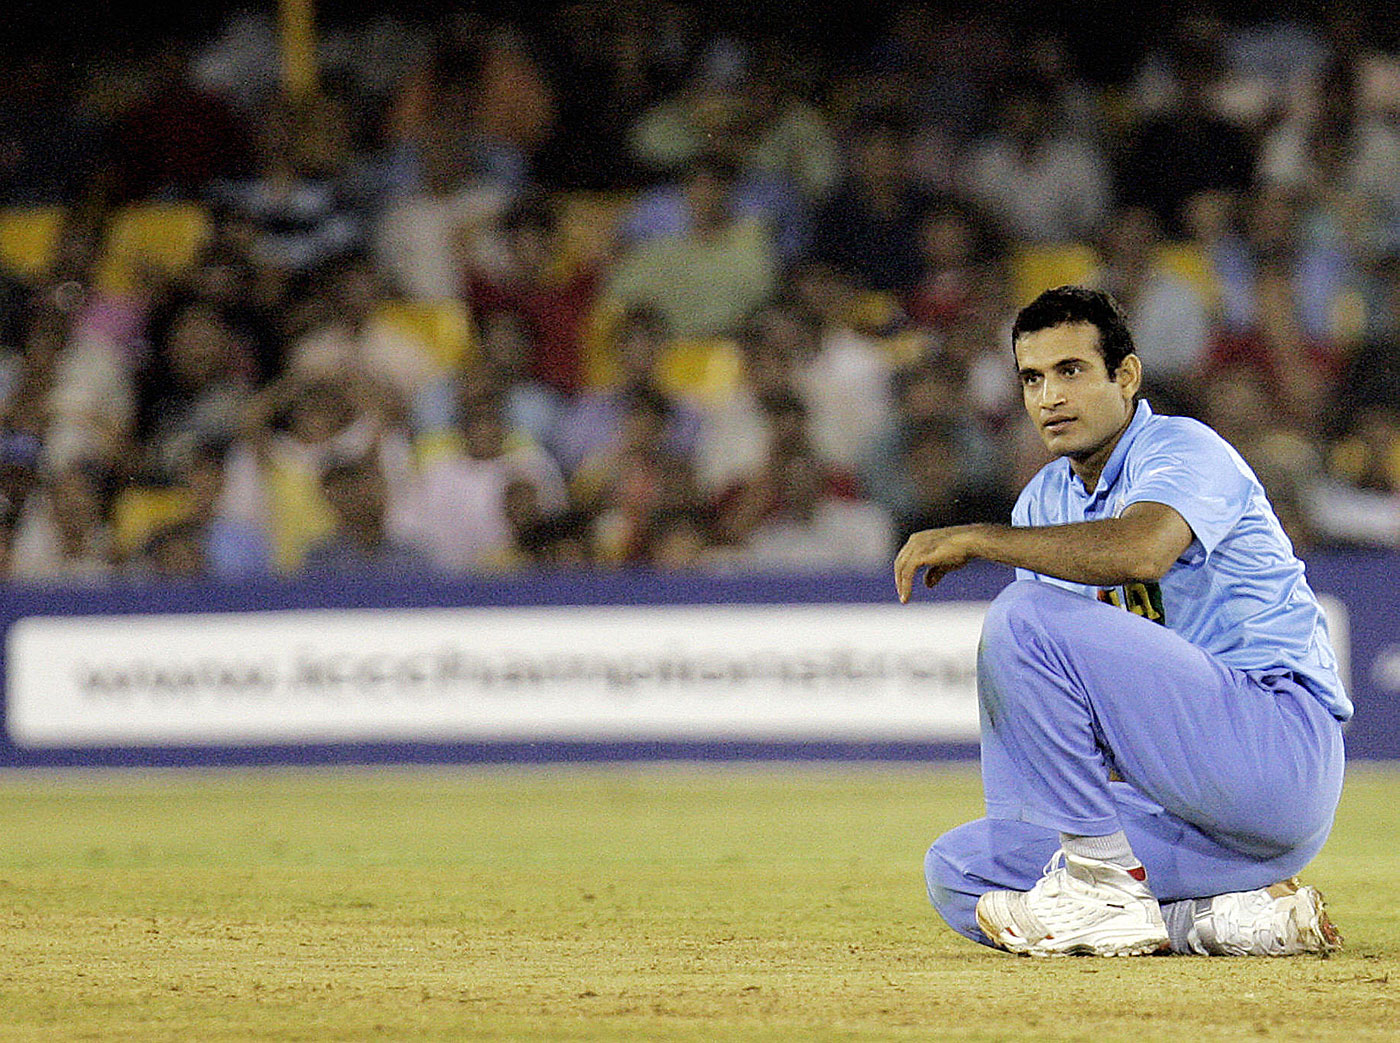 Opinions are still divided over why Irfan couldn't sustain himself as a strike bowler for India